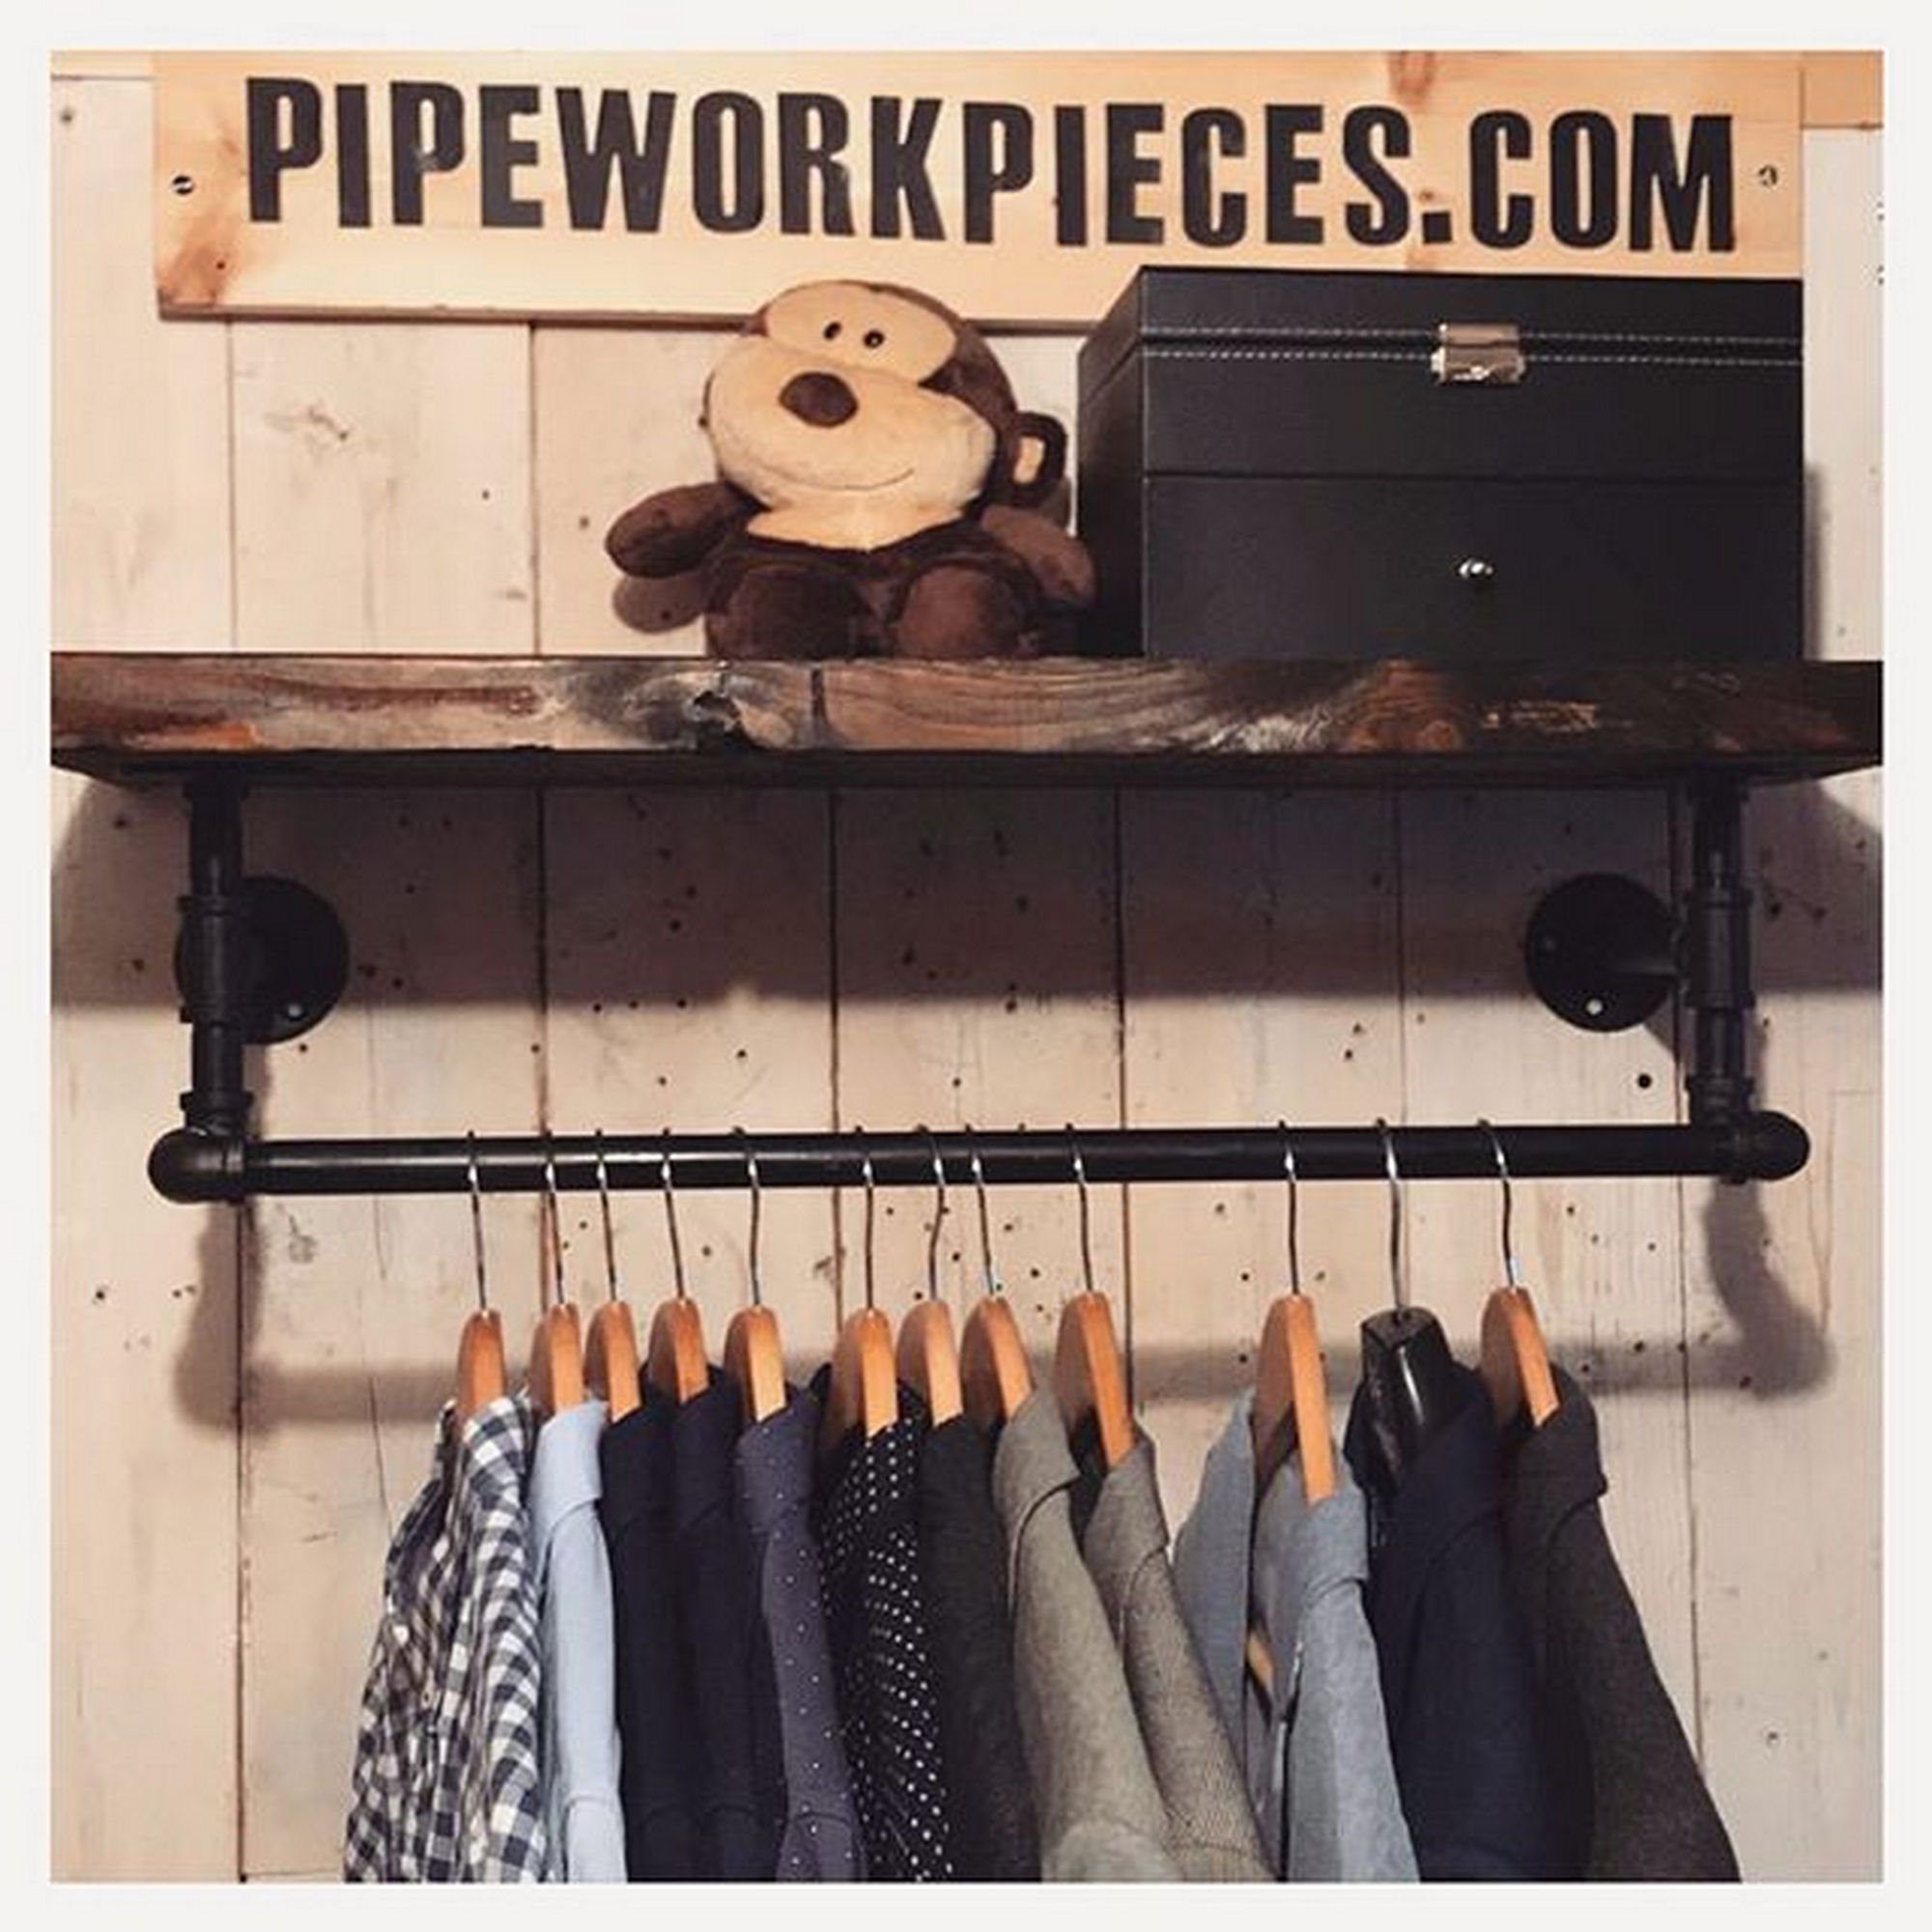 https://pipeworkpieces.com/wp-content/uploads/2020/10/industrial-style-clothes-rack-with-shelf-coat-rack-with-shelf-retro-clothing-rack-new-lower-price-5f7b9b55.jpg